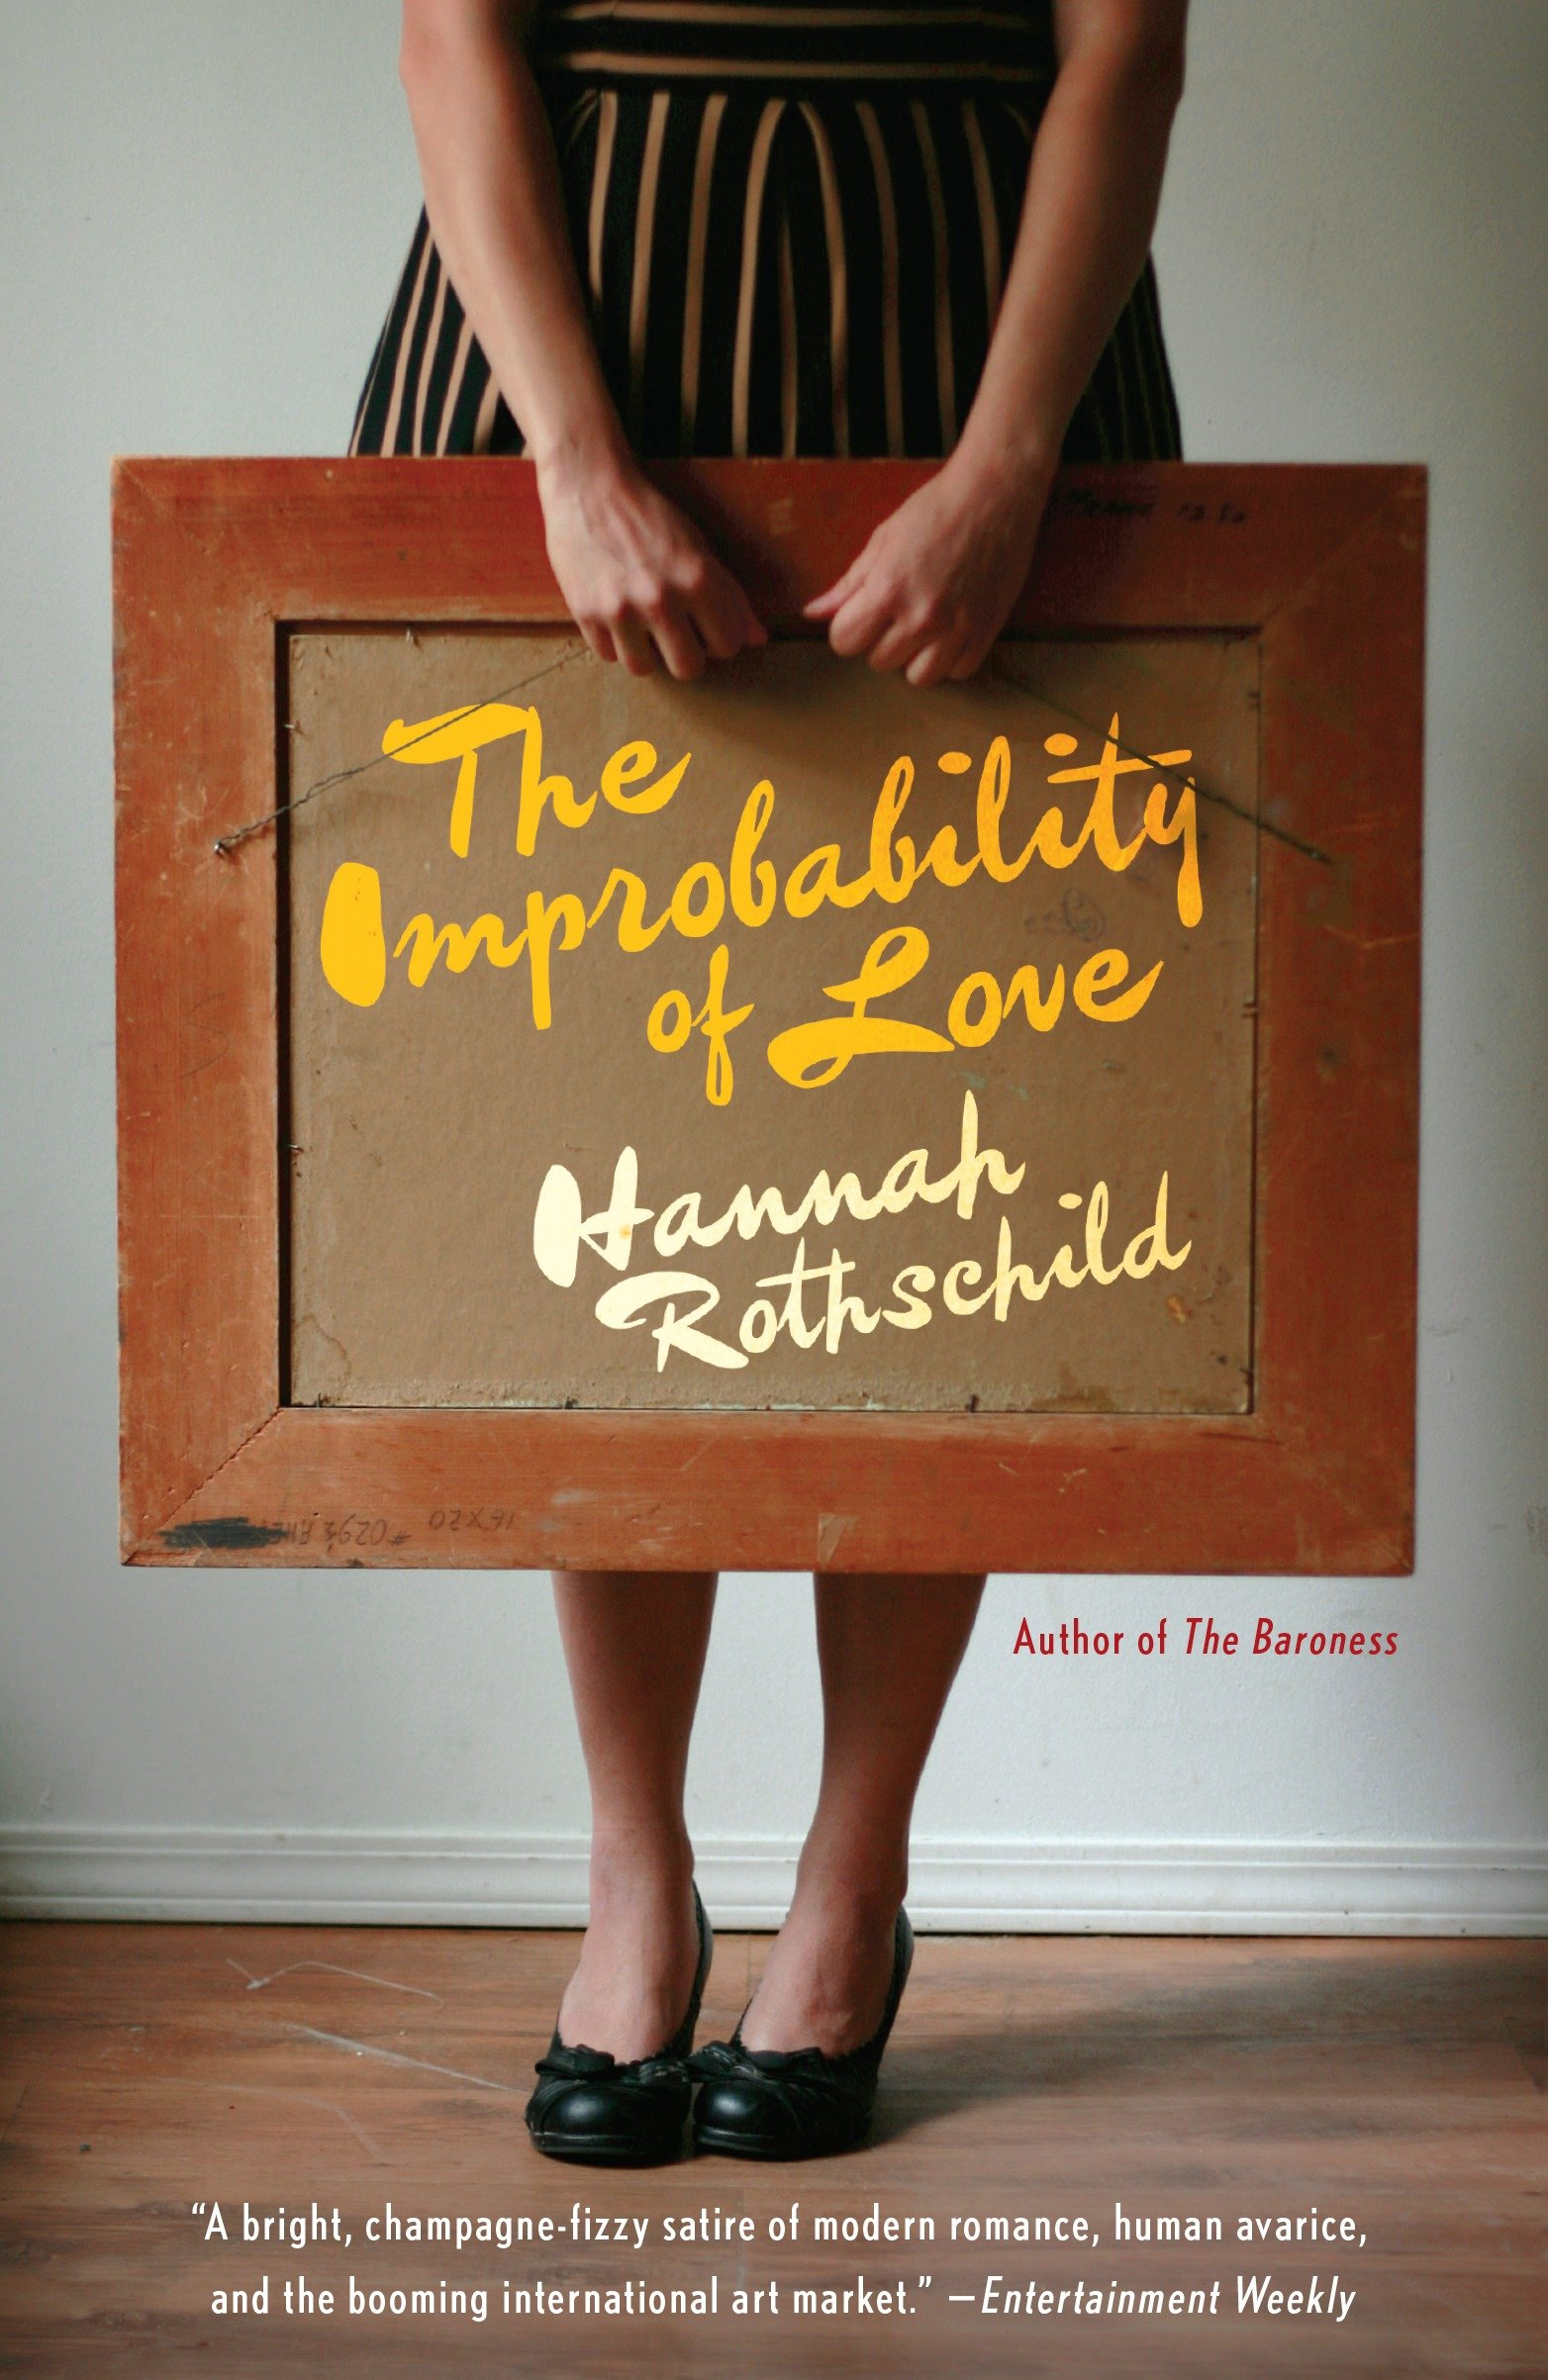 The improbability of love cover image